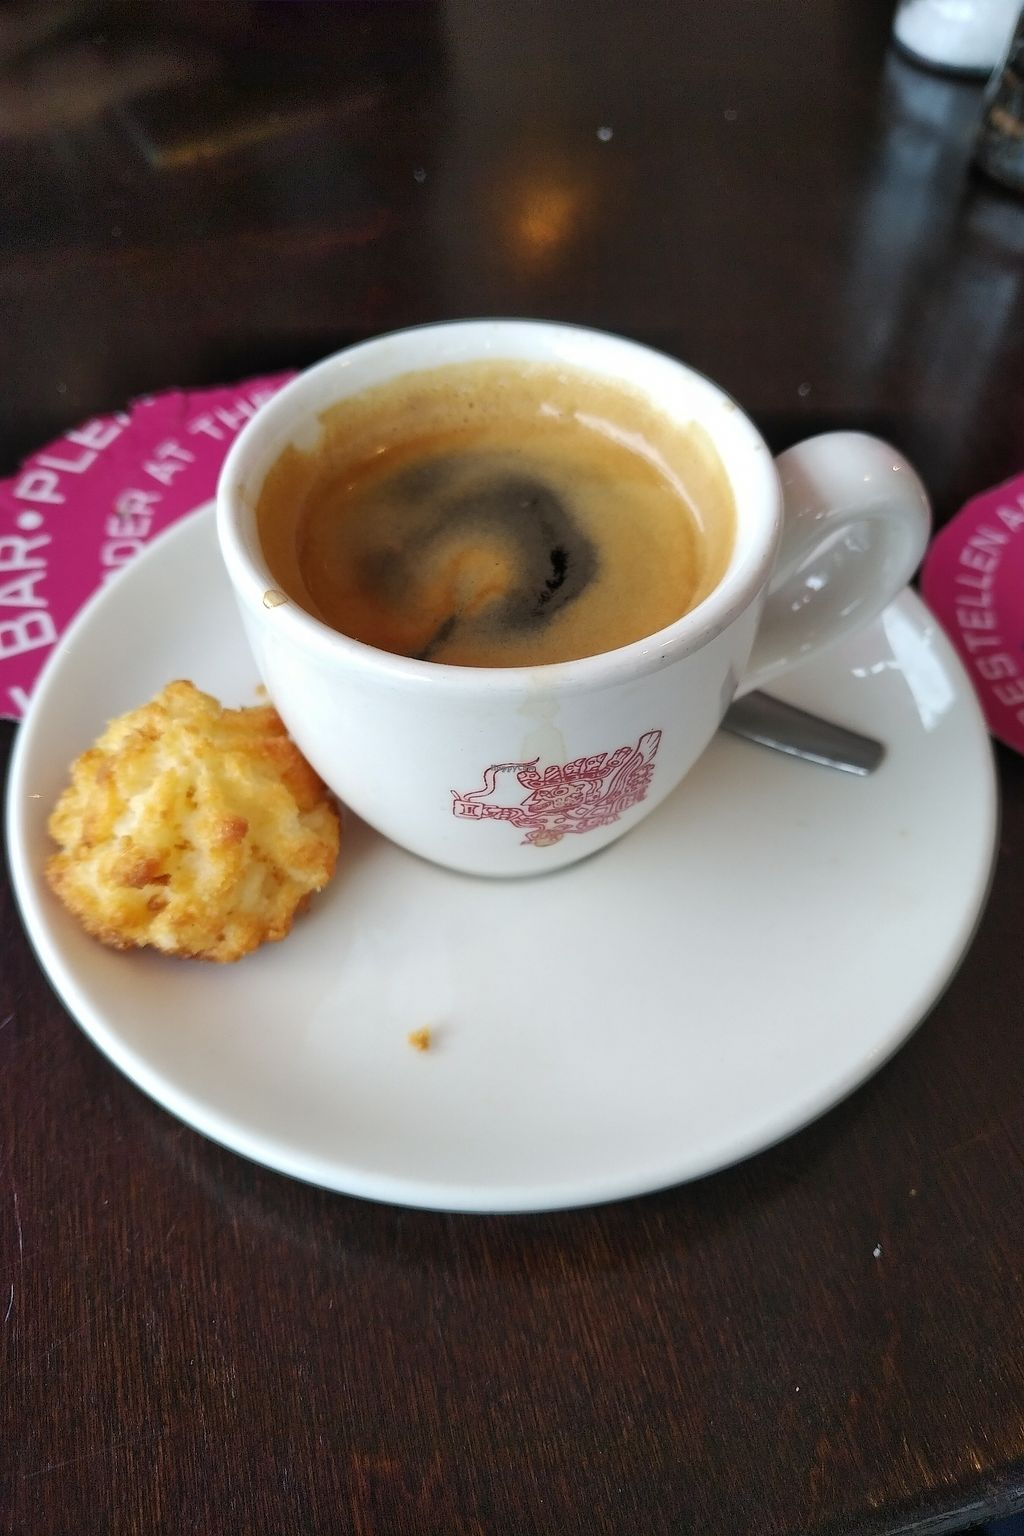 """Photo of Jetties  by <a href=""""/members/profile/SusanAC"""">SusanAC</a> <br/>and the espresso is delicious  <br/> August 17, 2017  - <a href='/contact/abuse/image/32320/293675'>Report</a>"""